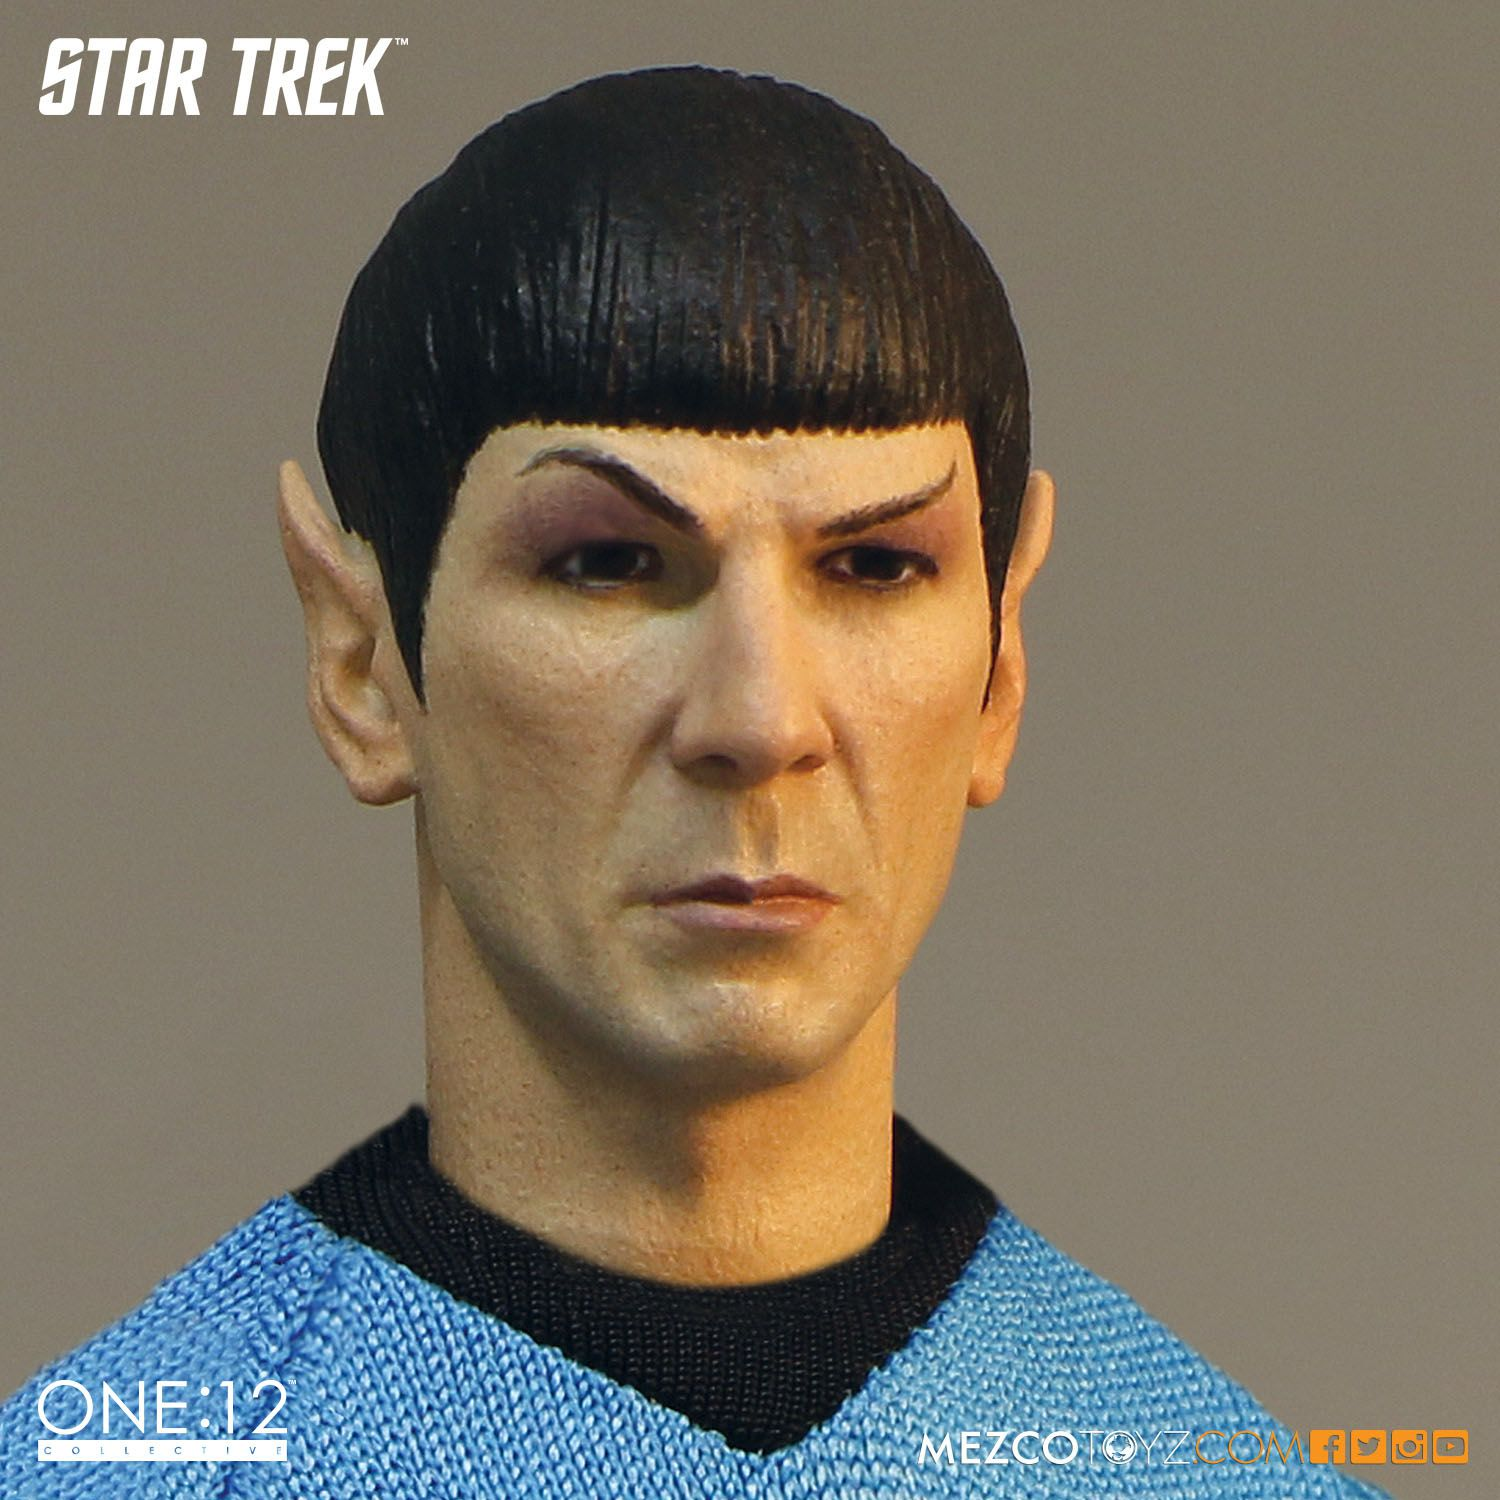 Mezco One 12 Collective Star Trek Spock action figure 6